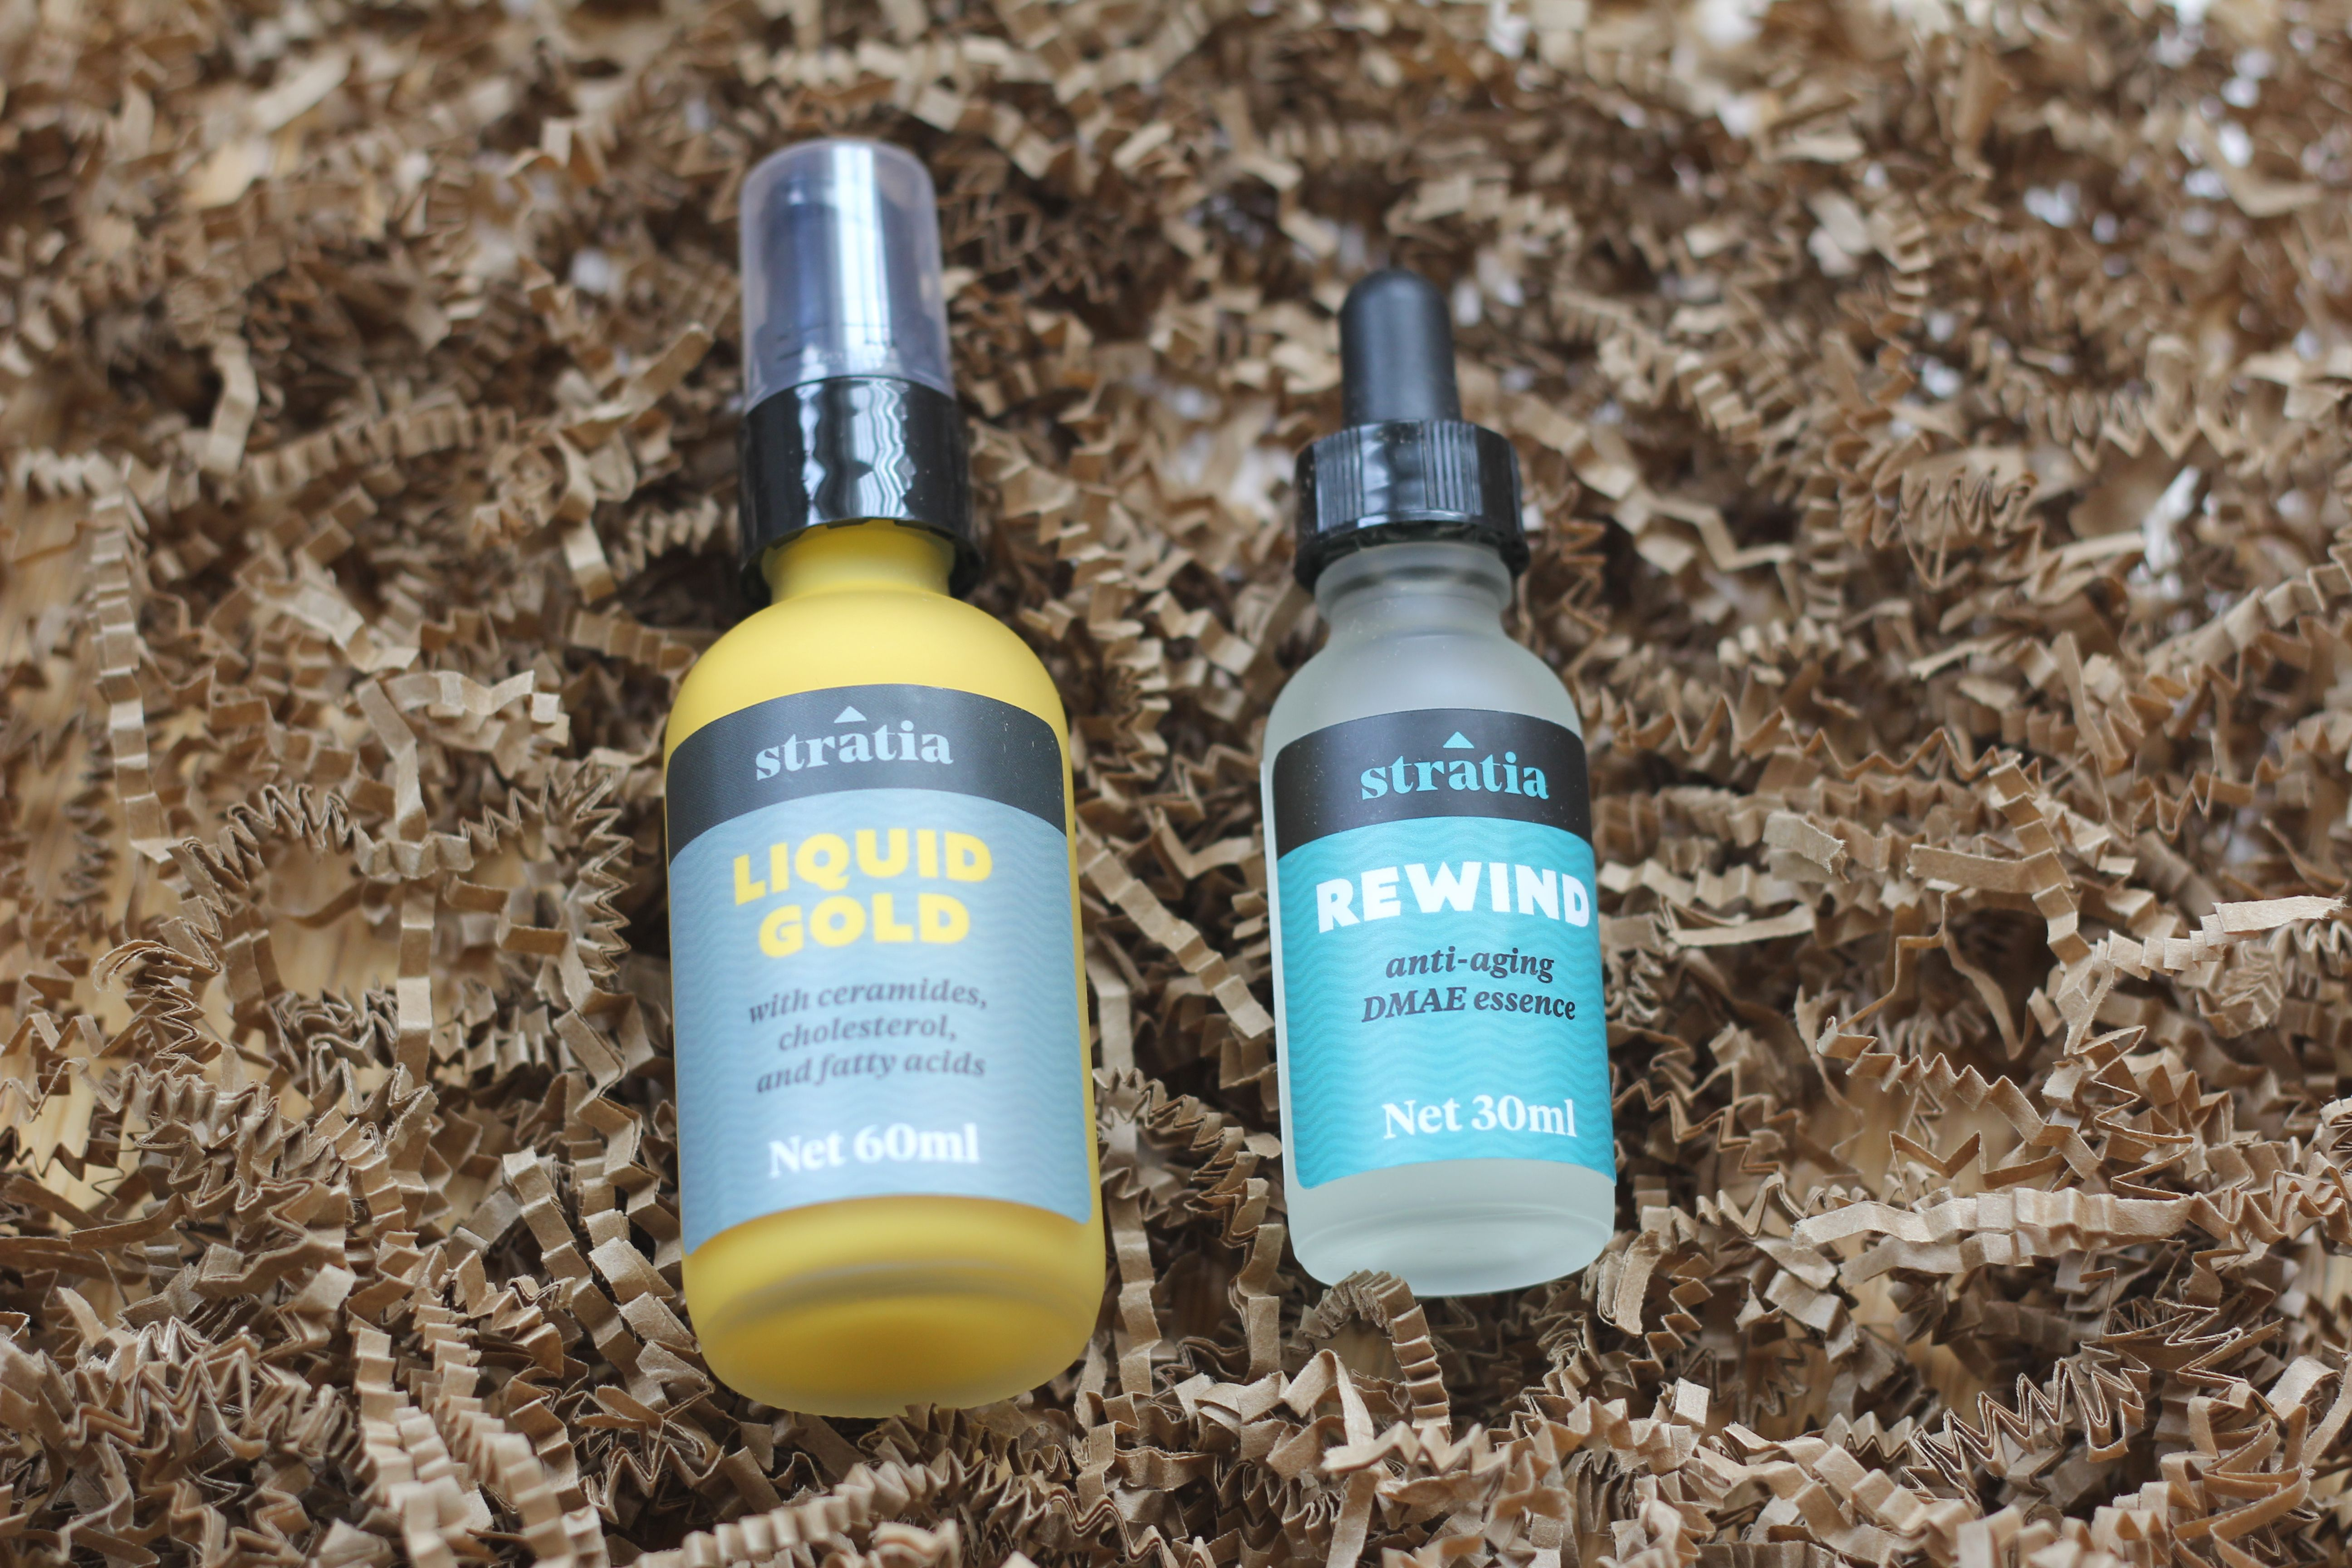 Product Review Stratia Liquid Gold Asian skincare, Gold